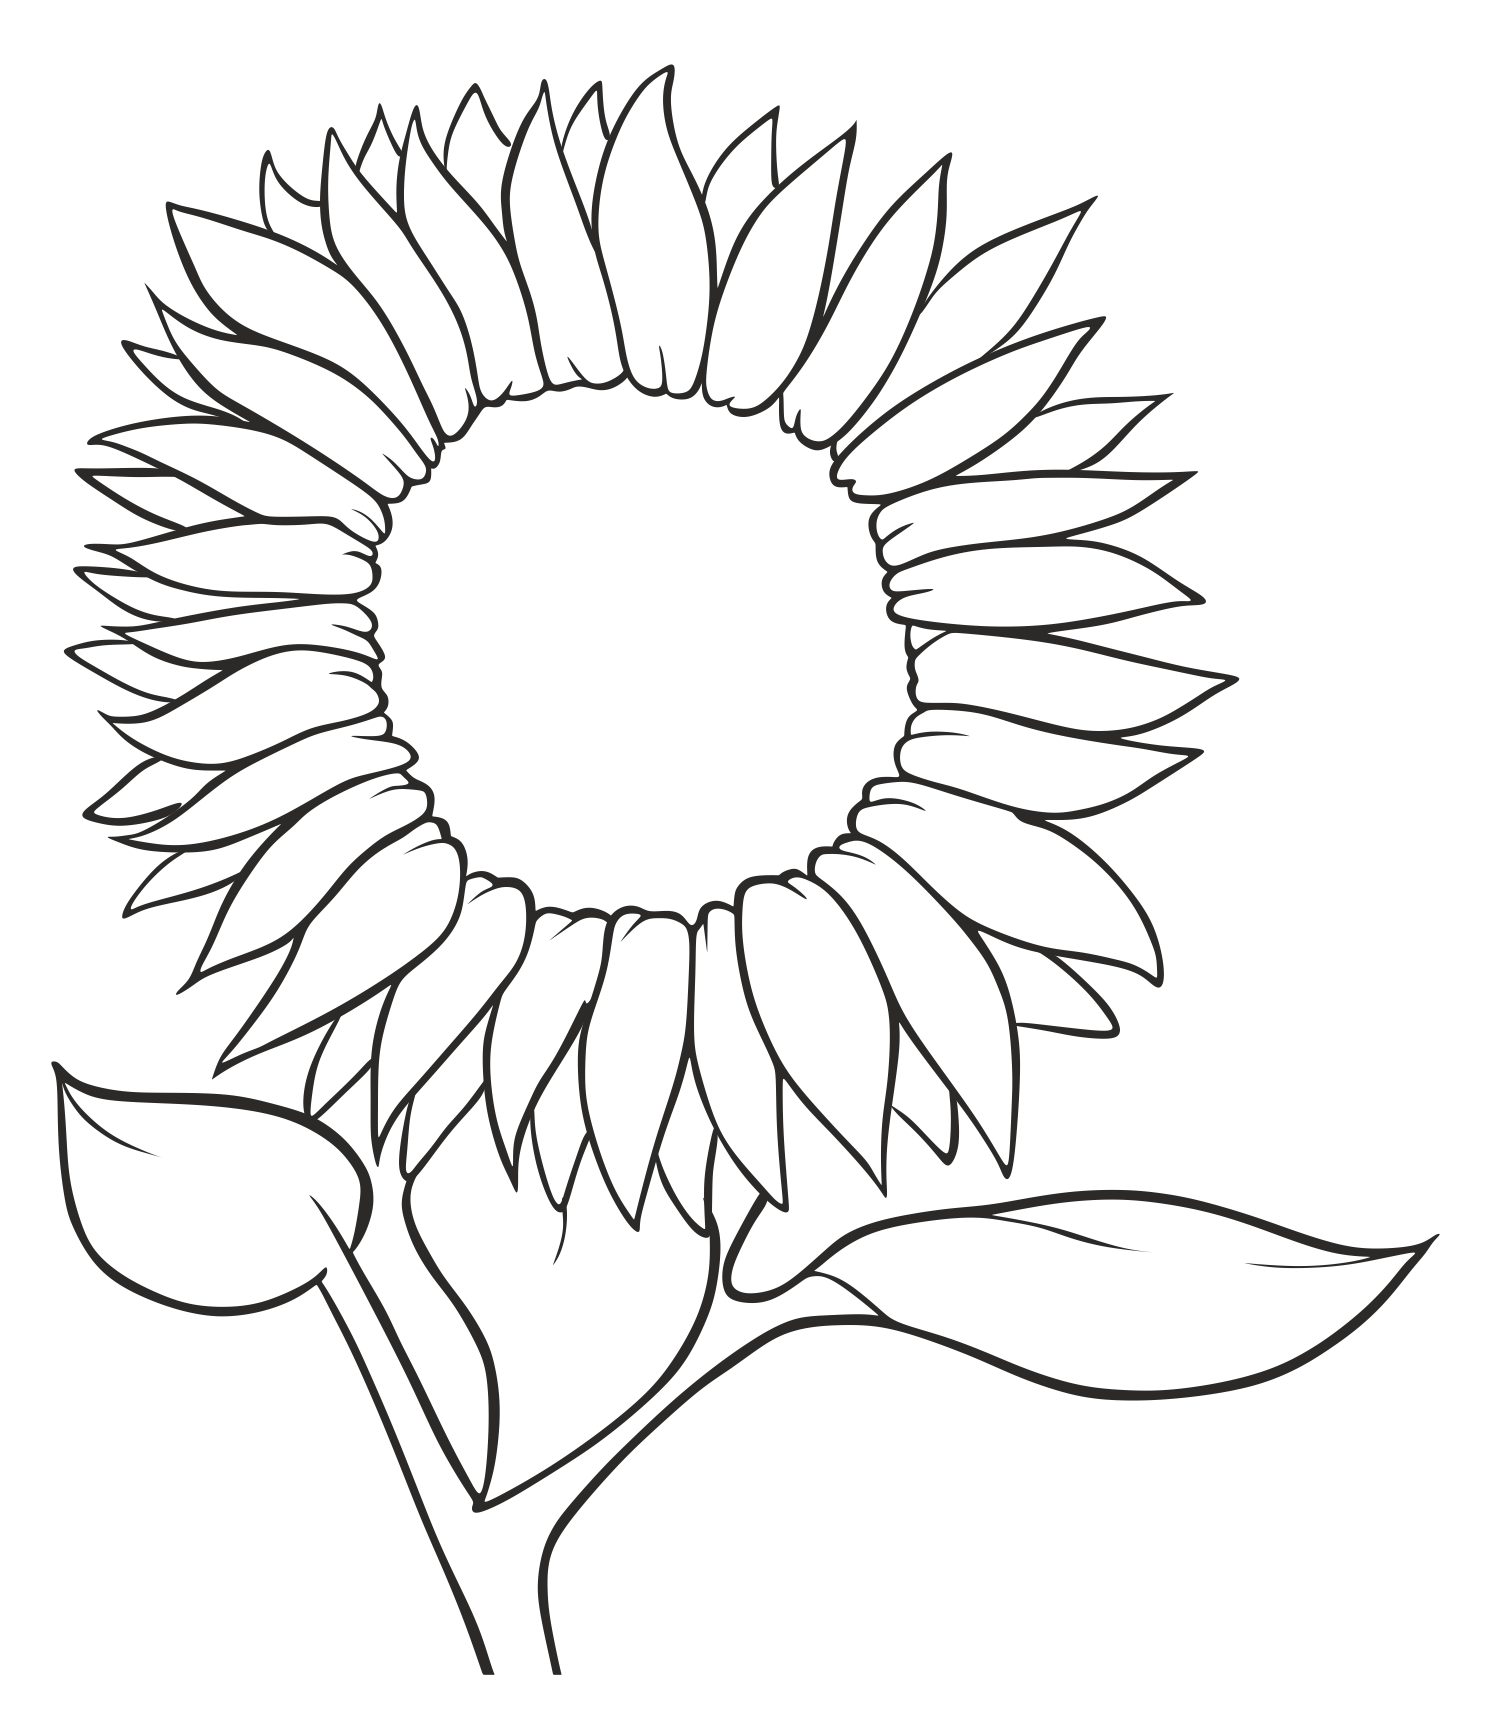 Drawing sunflowers black grey. Common sunflower seed sketch